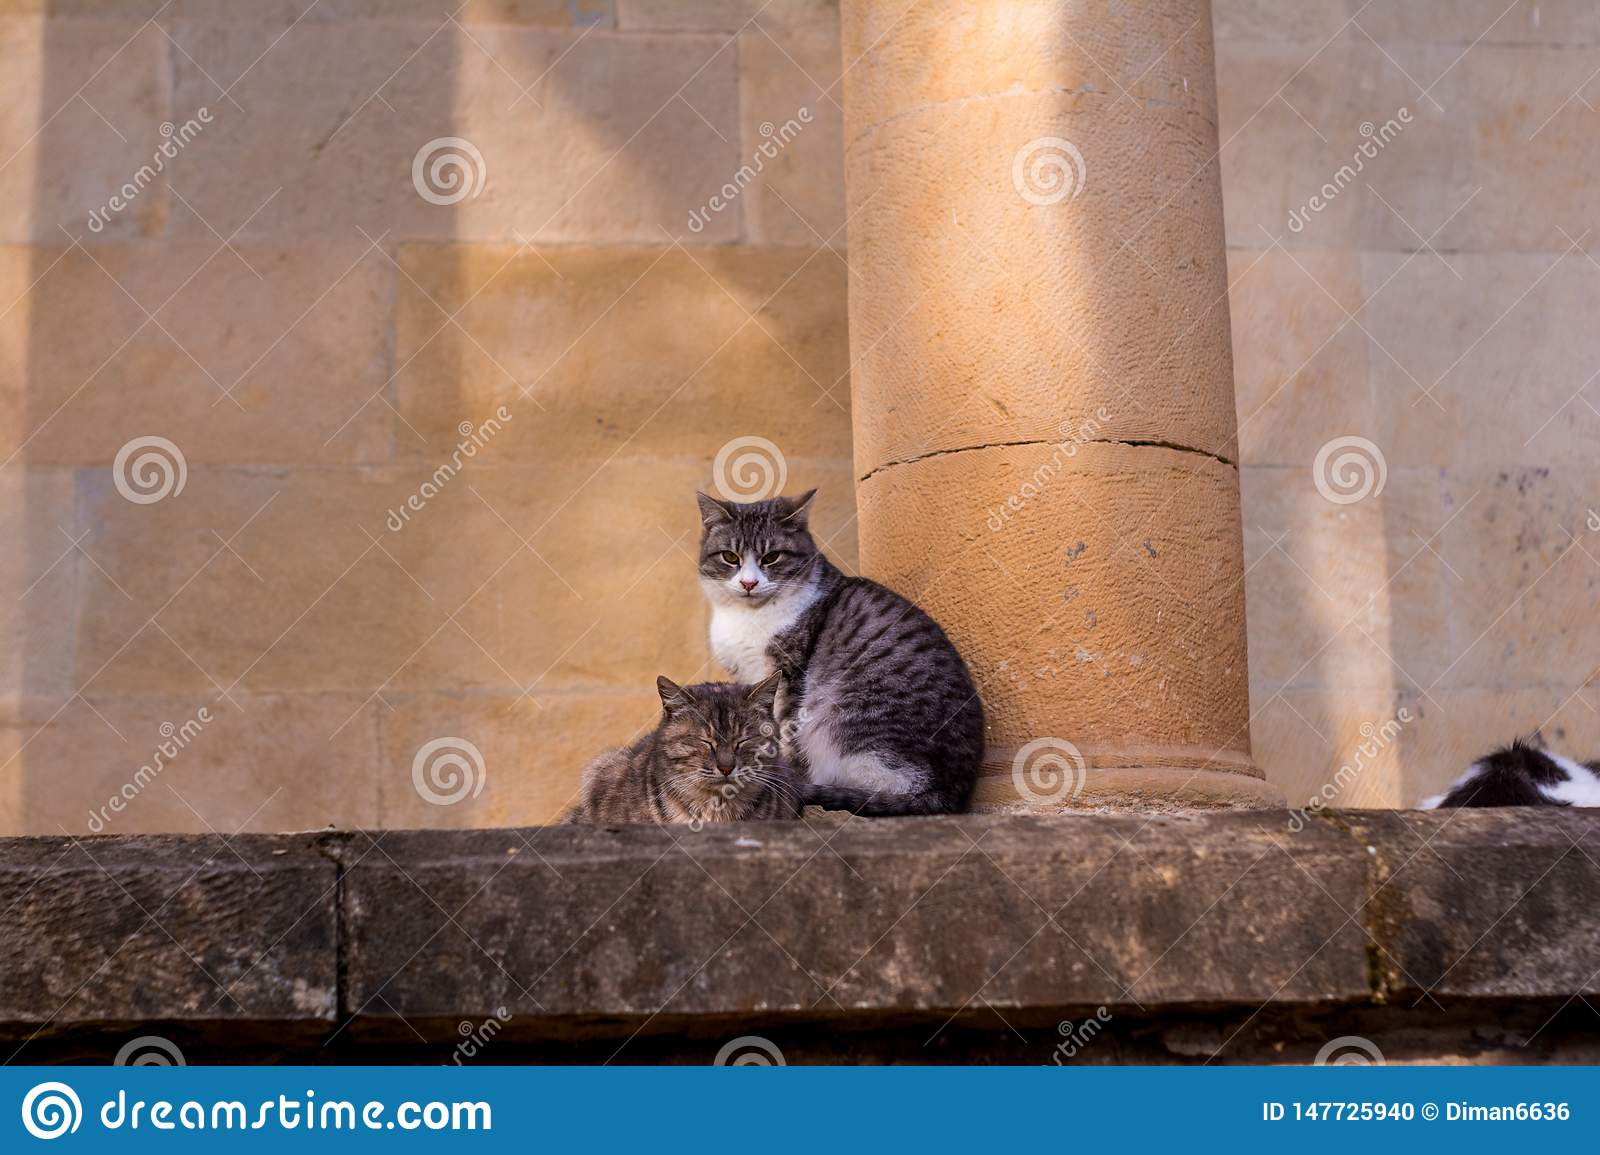 Cats sit on a stone and fall asleep